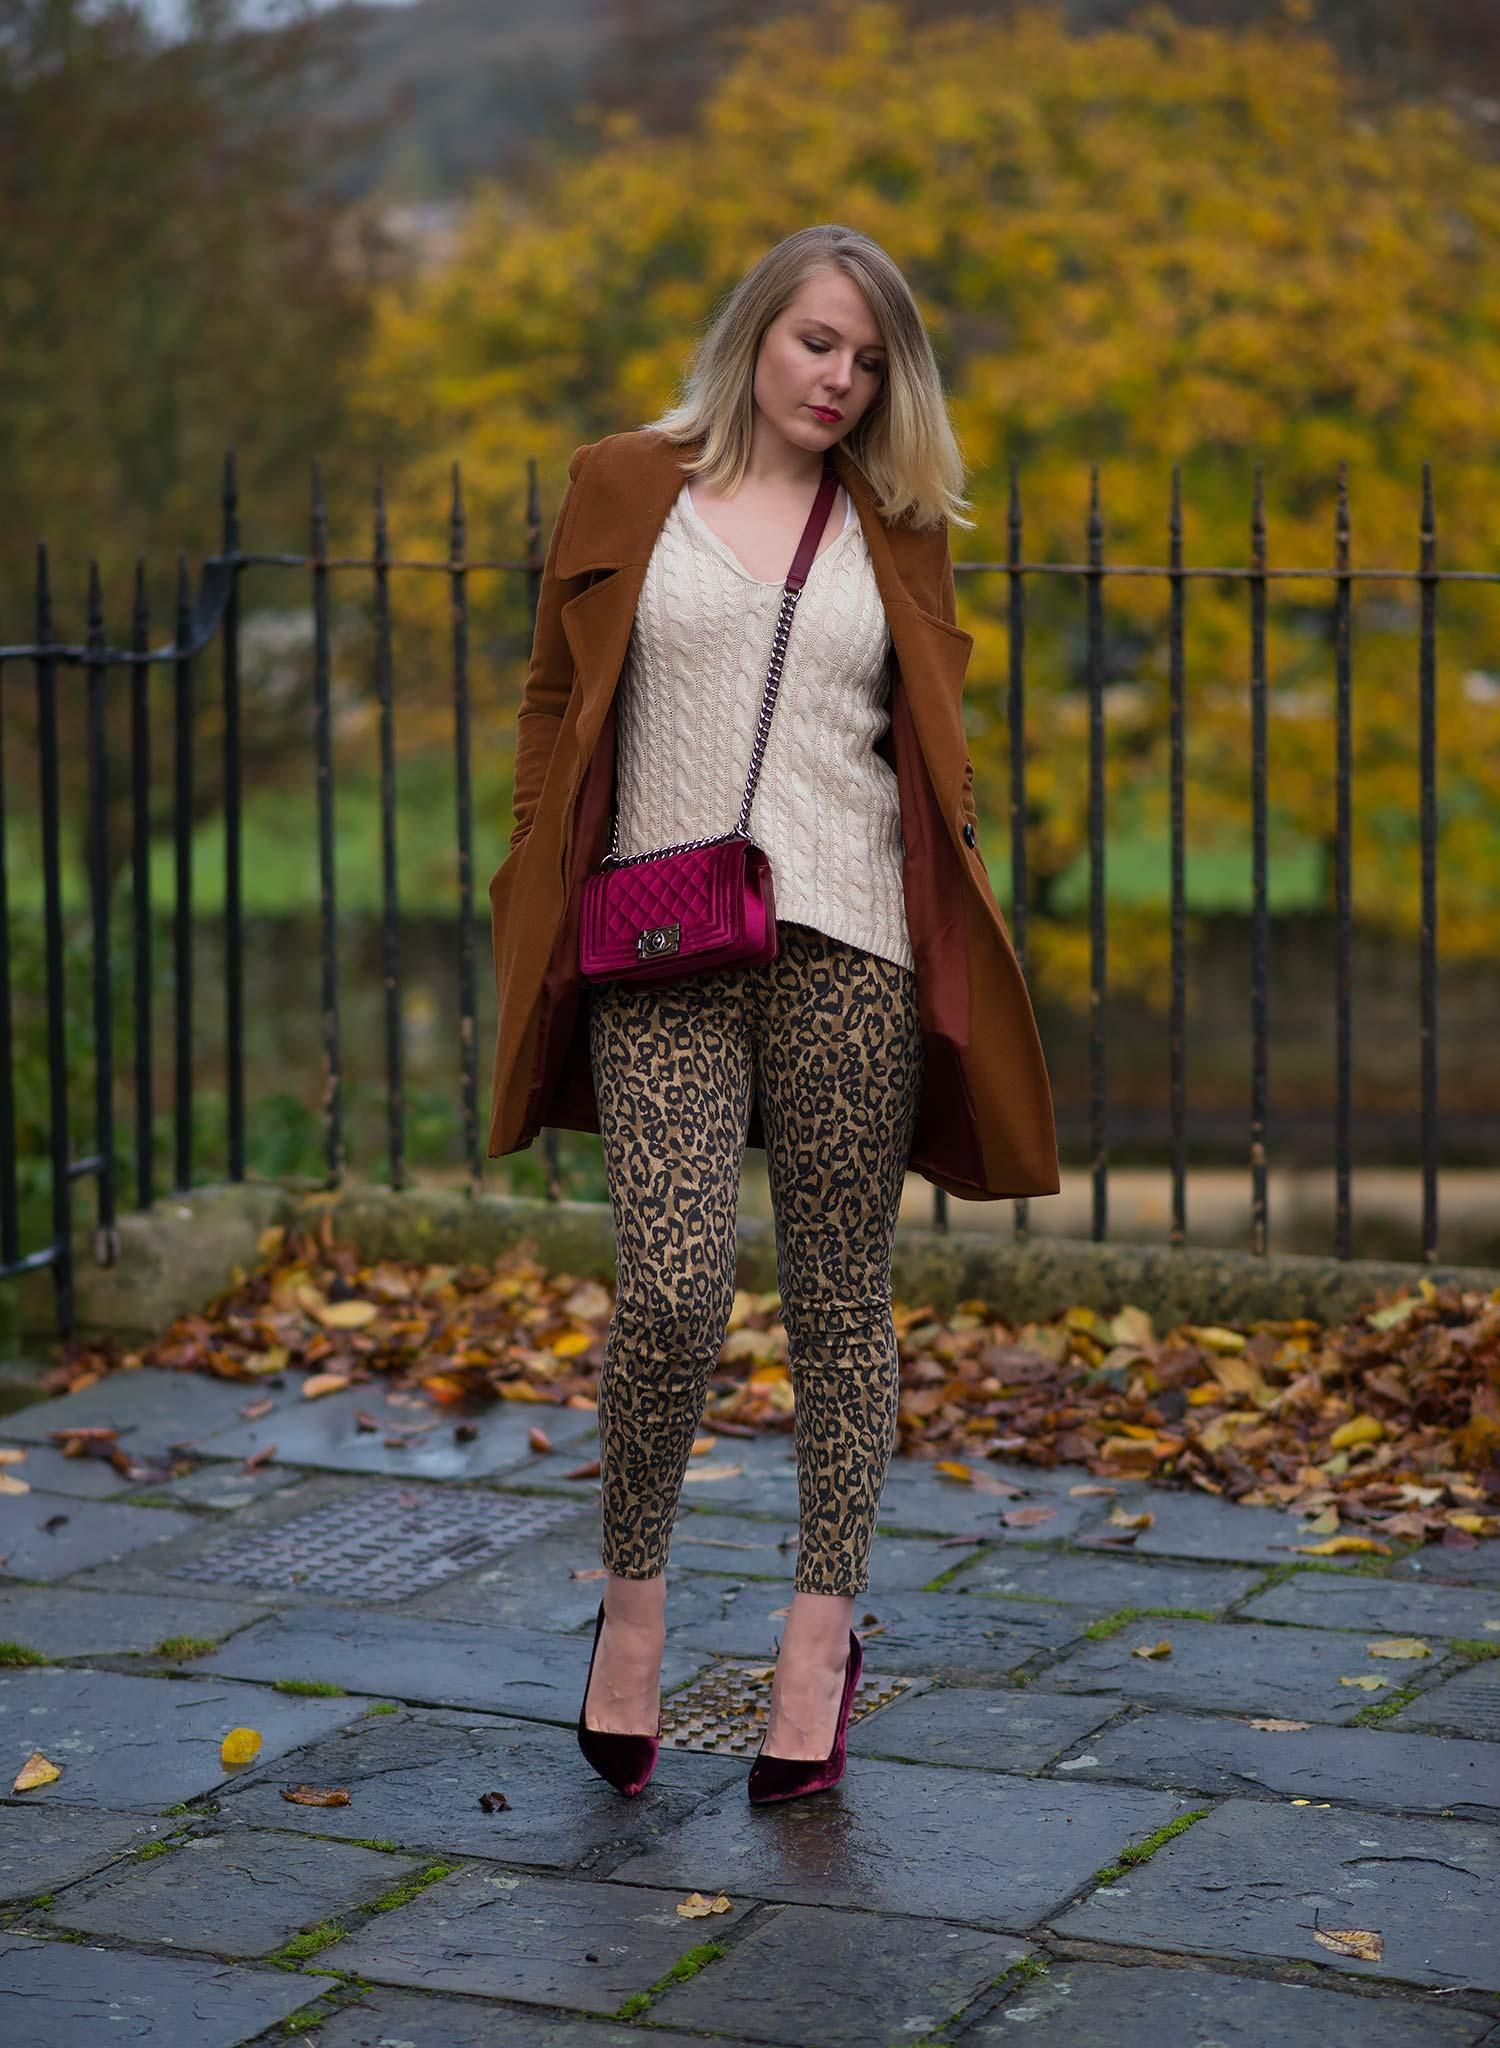 lorna-burford-leopard-jeans-velvet-bag-outfit-street-style